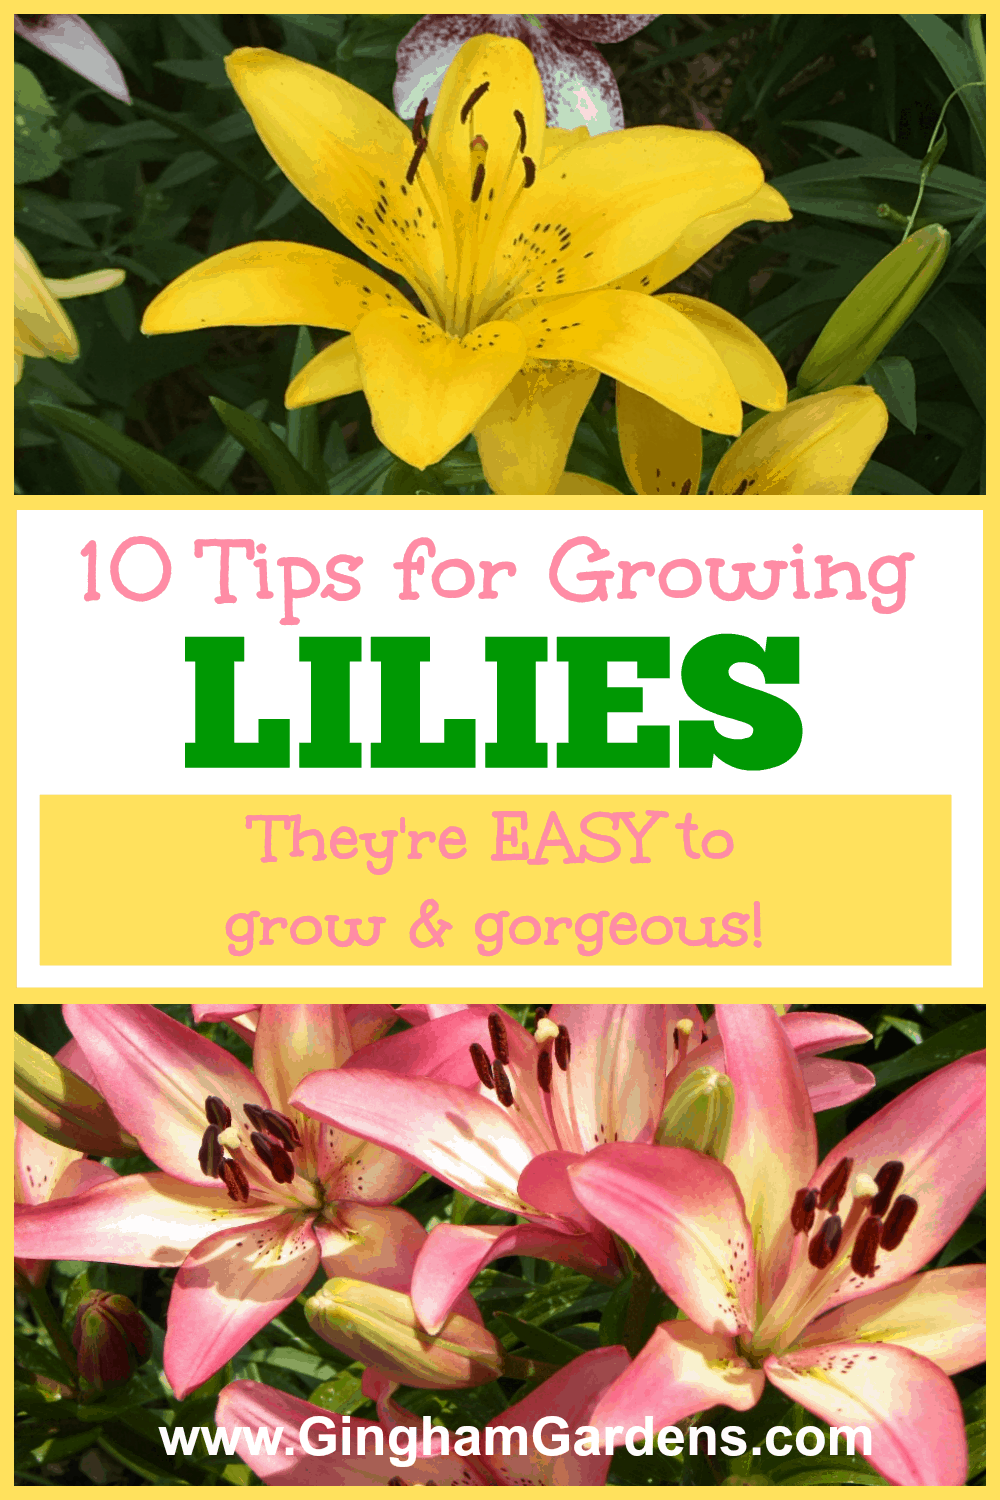 10 Tips for Growing Lilies